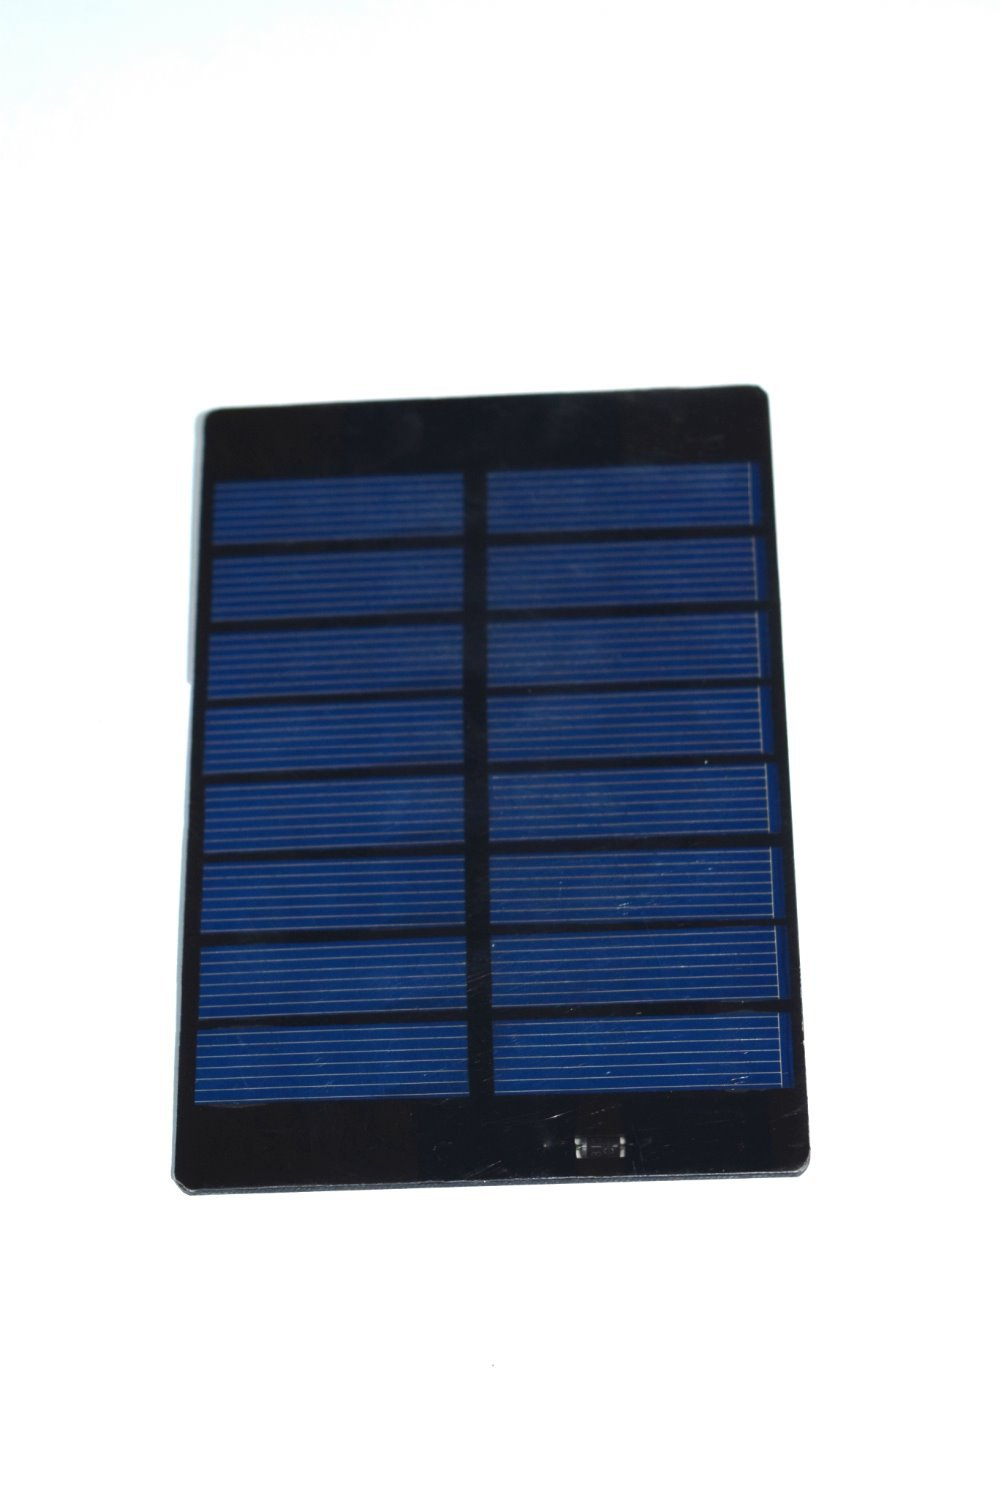 10pcs 4V 250mA PET laminated Solar Modules, High Quality and Low Price(China (Mainland))